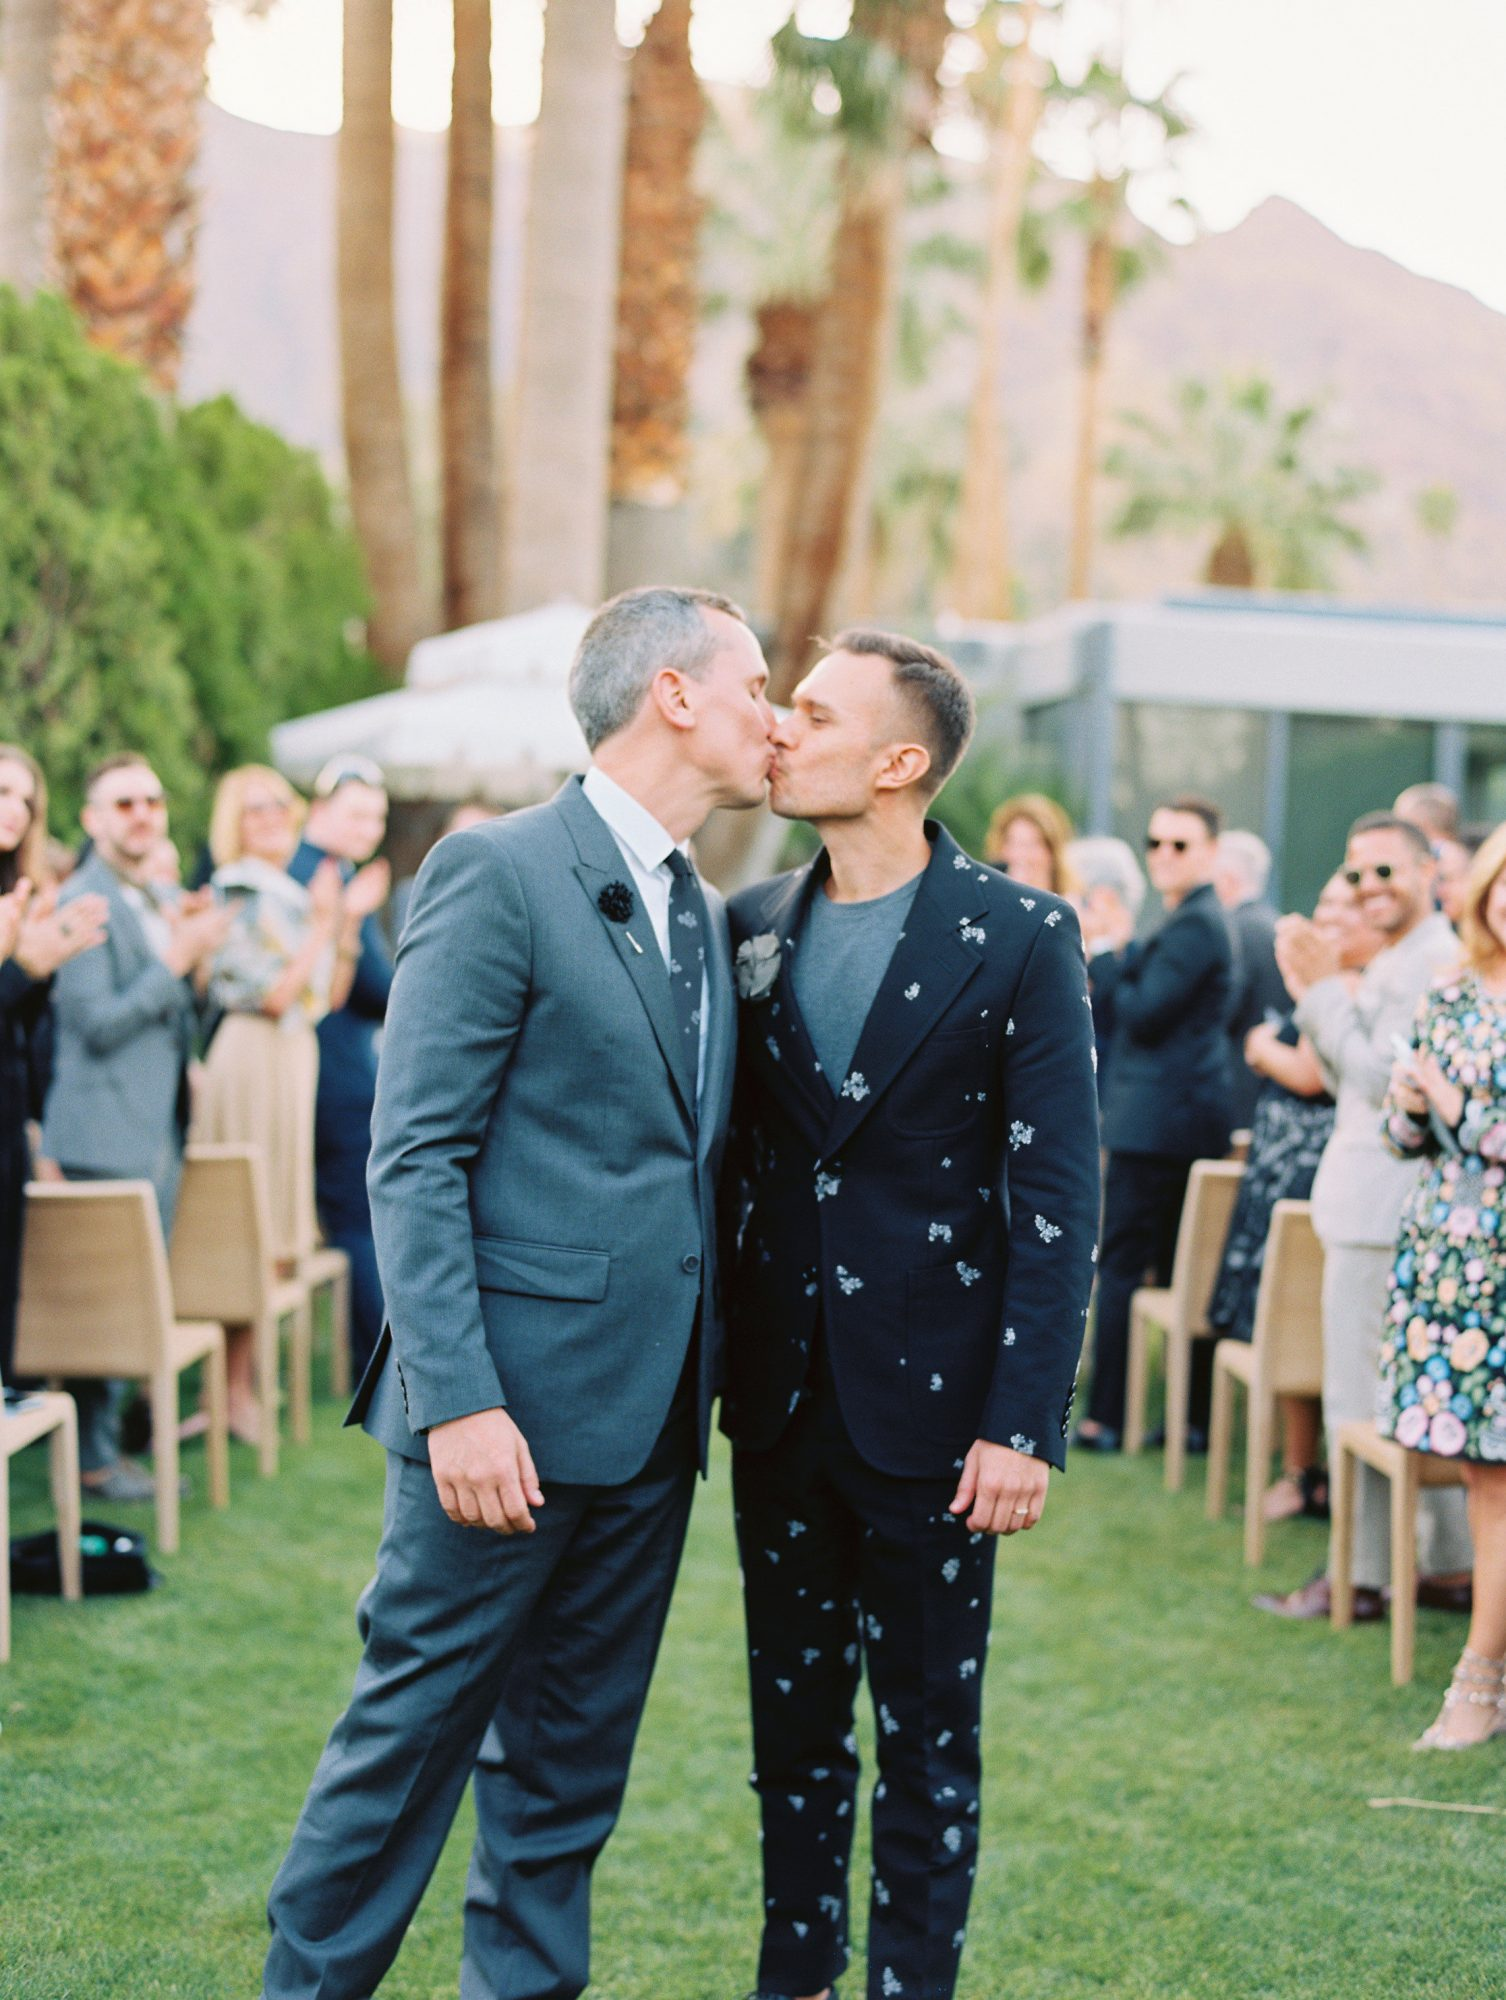 The groom on the right looked dapper in an Alexander McQueen suit, which was finished with a fabric flower by Lanvin on his lapel.